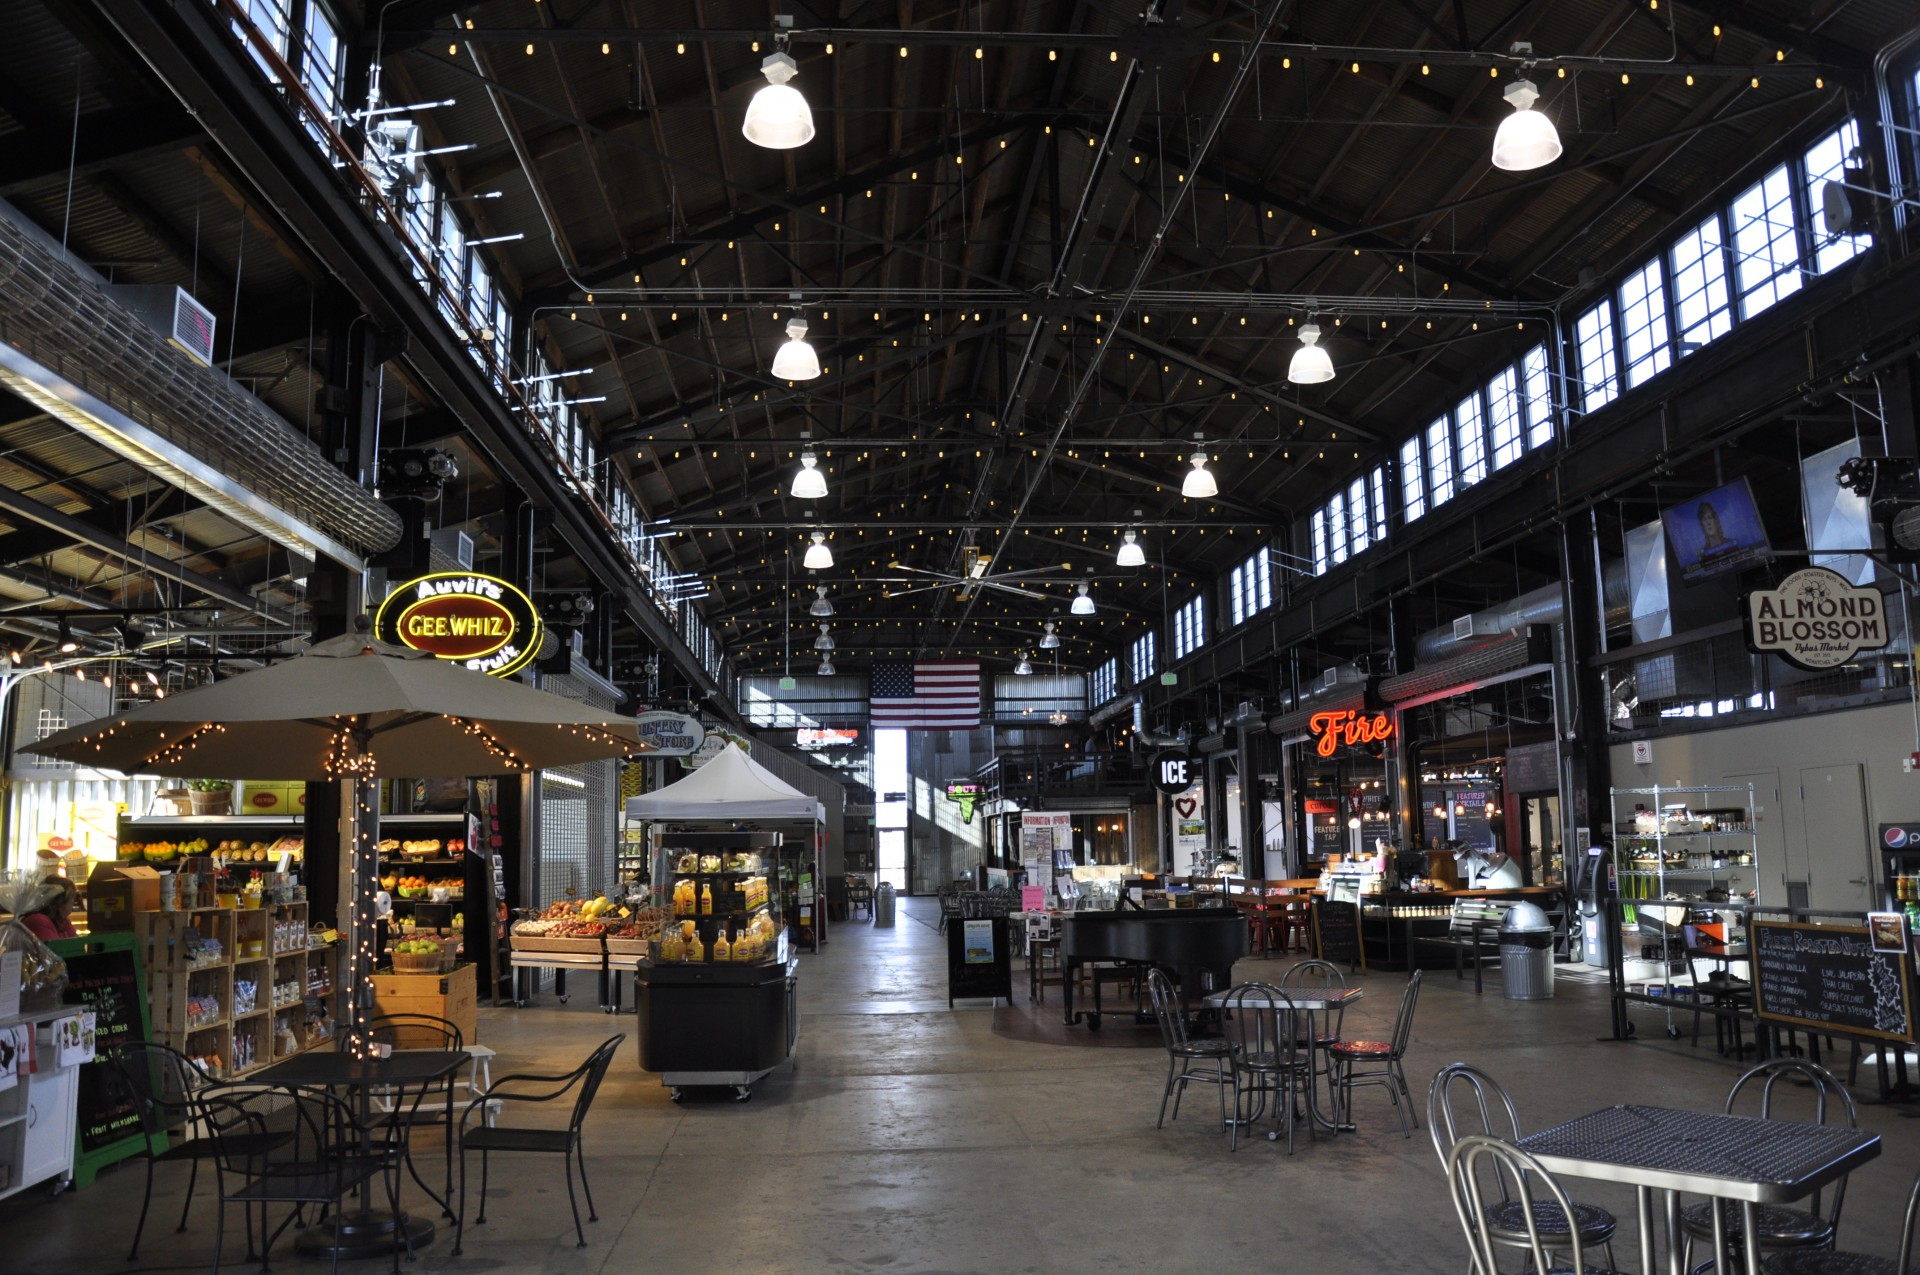 Visit the popular Pybus Market